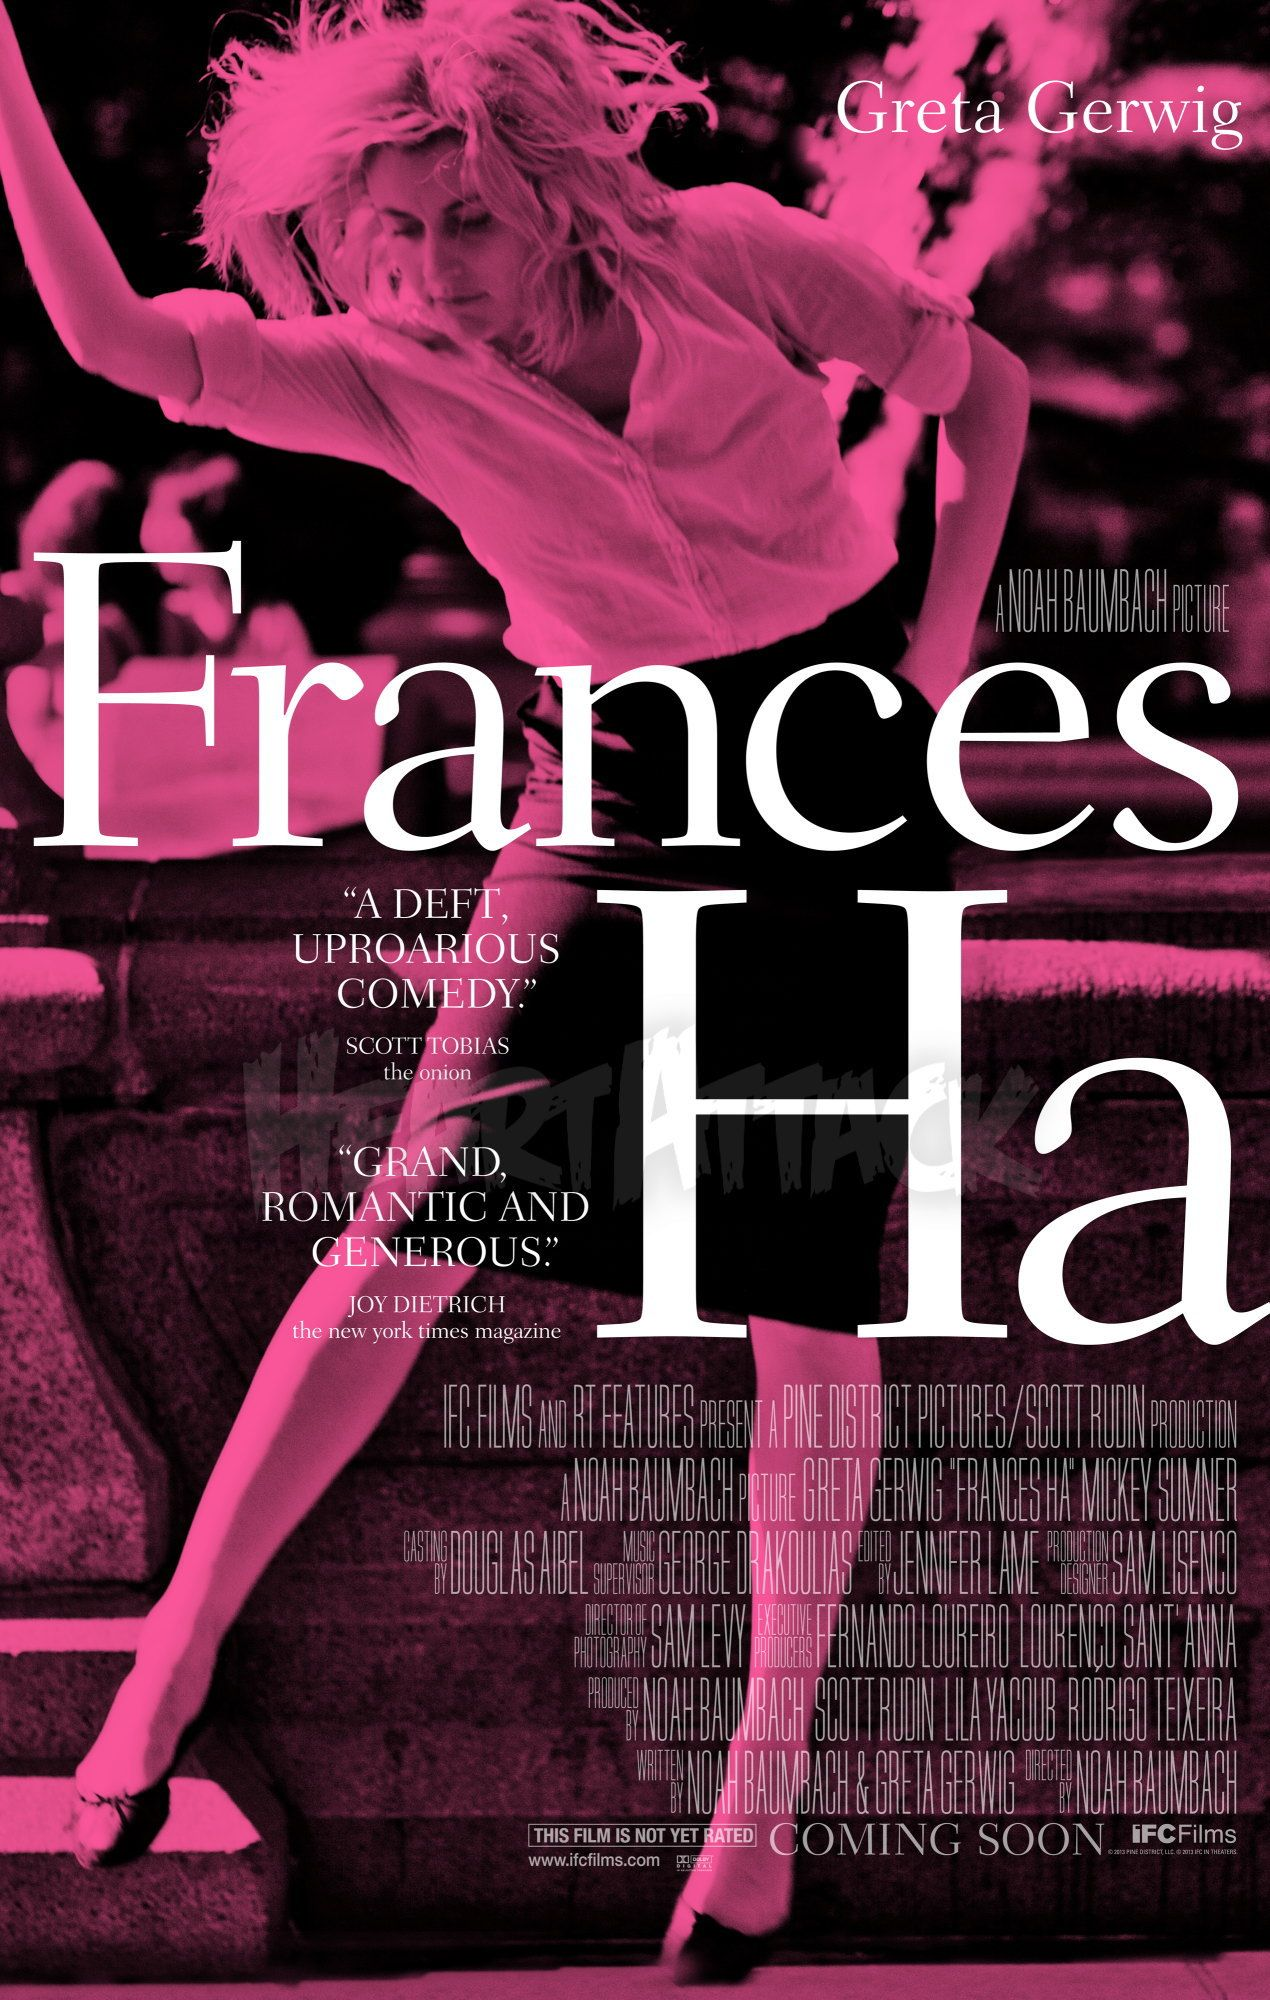 14 Films And Series You Should Add To Your List To Look Smarter Frances Ha Good Movies To Watch Good Movies On Netflix